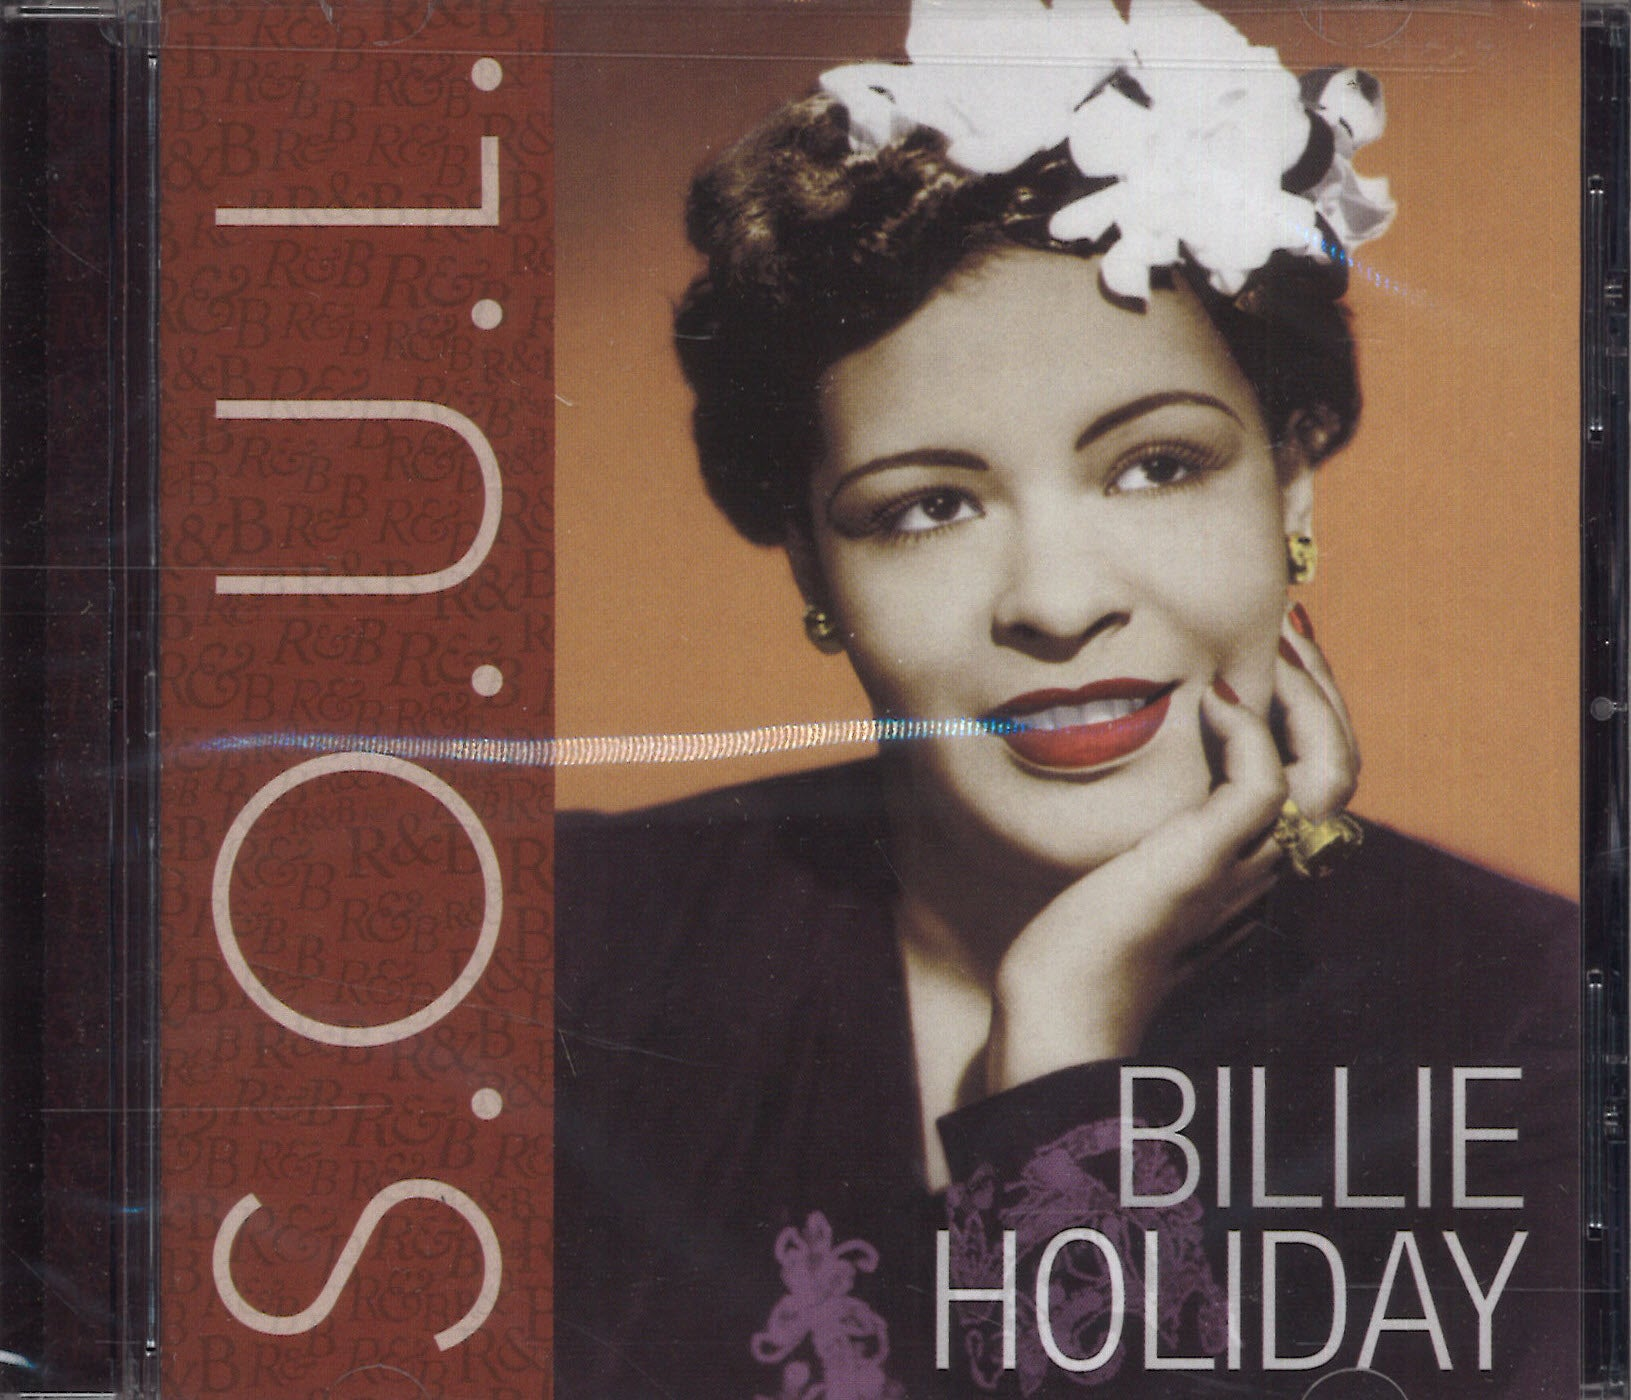 Billie Holiday S.O.U.L.